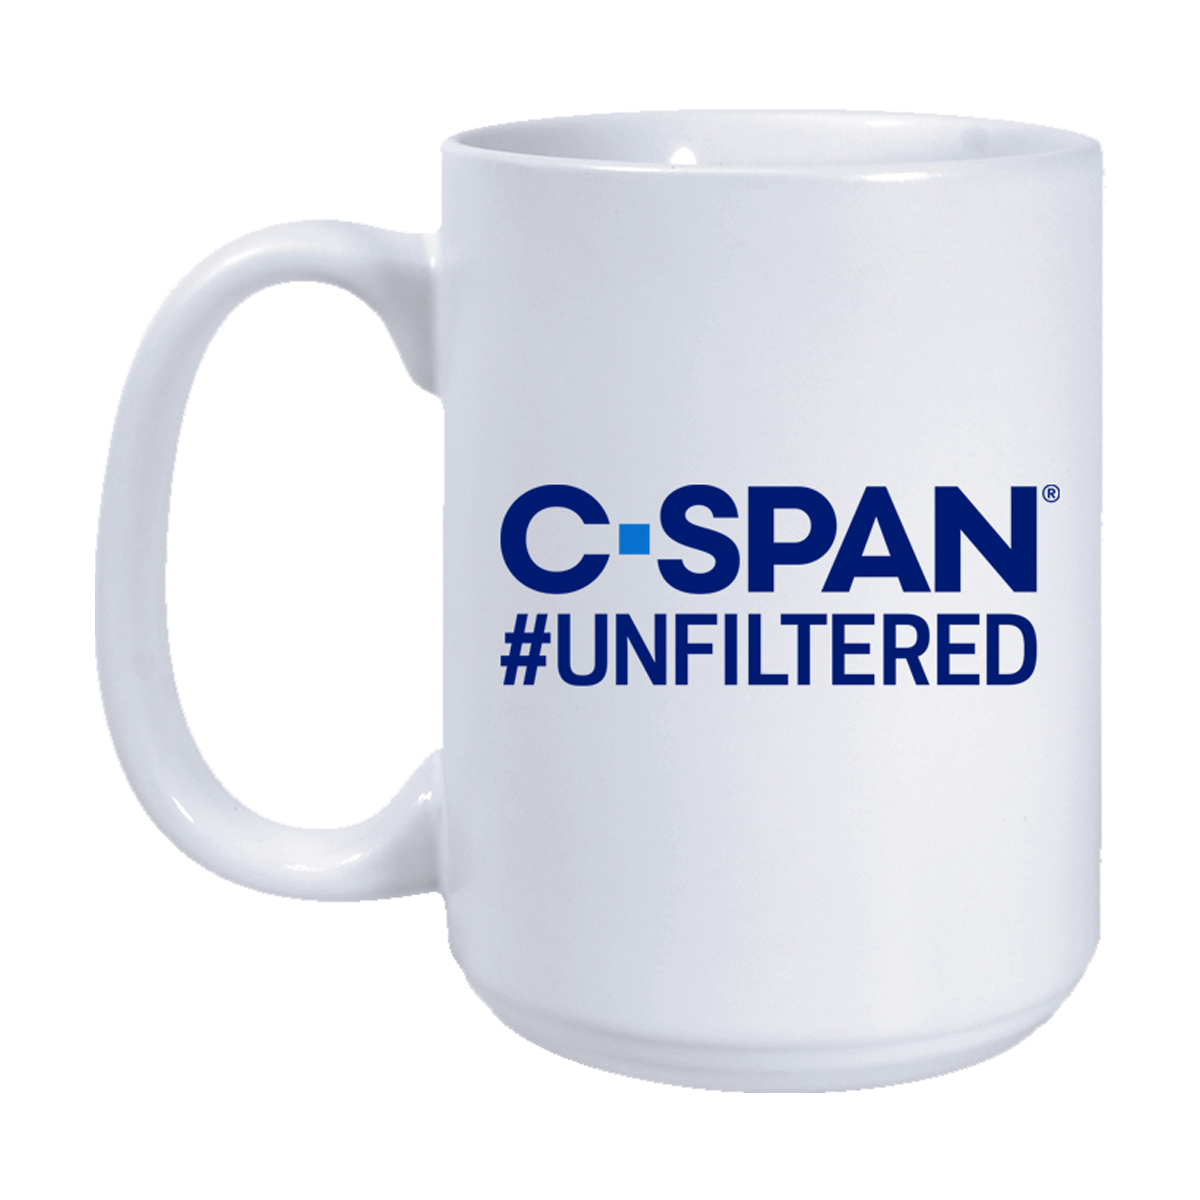 C-SPAN #Unfiltered 15oz Mug